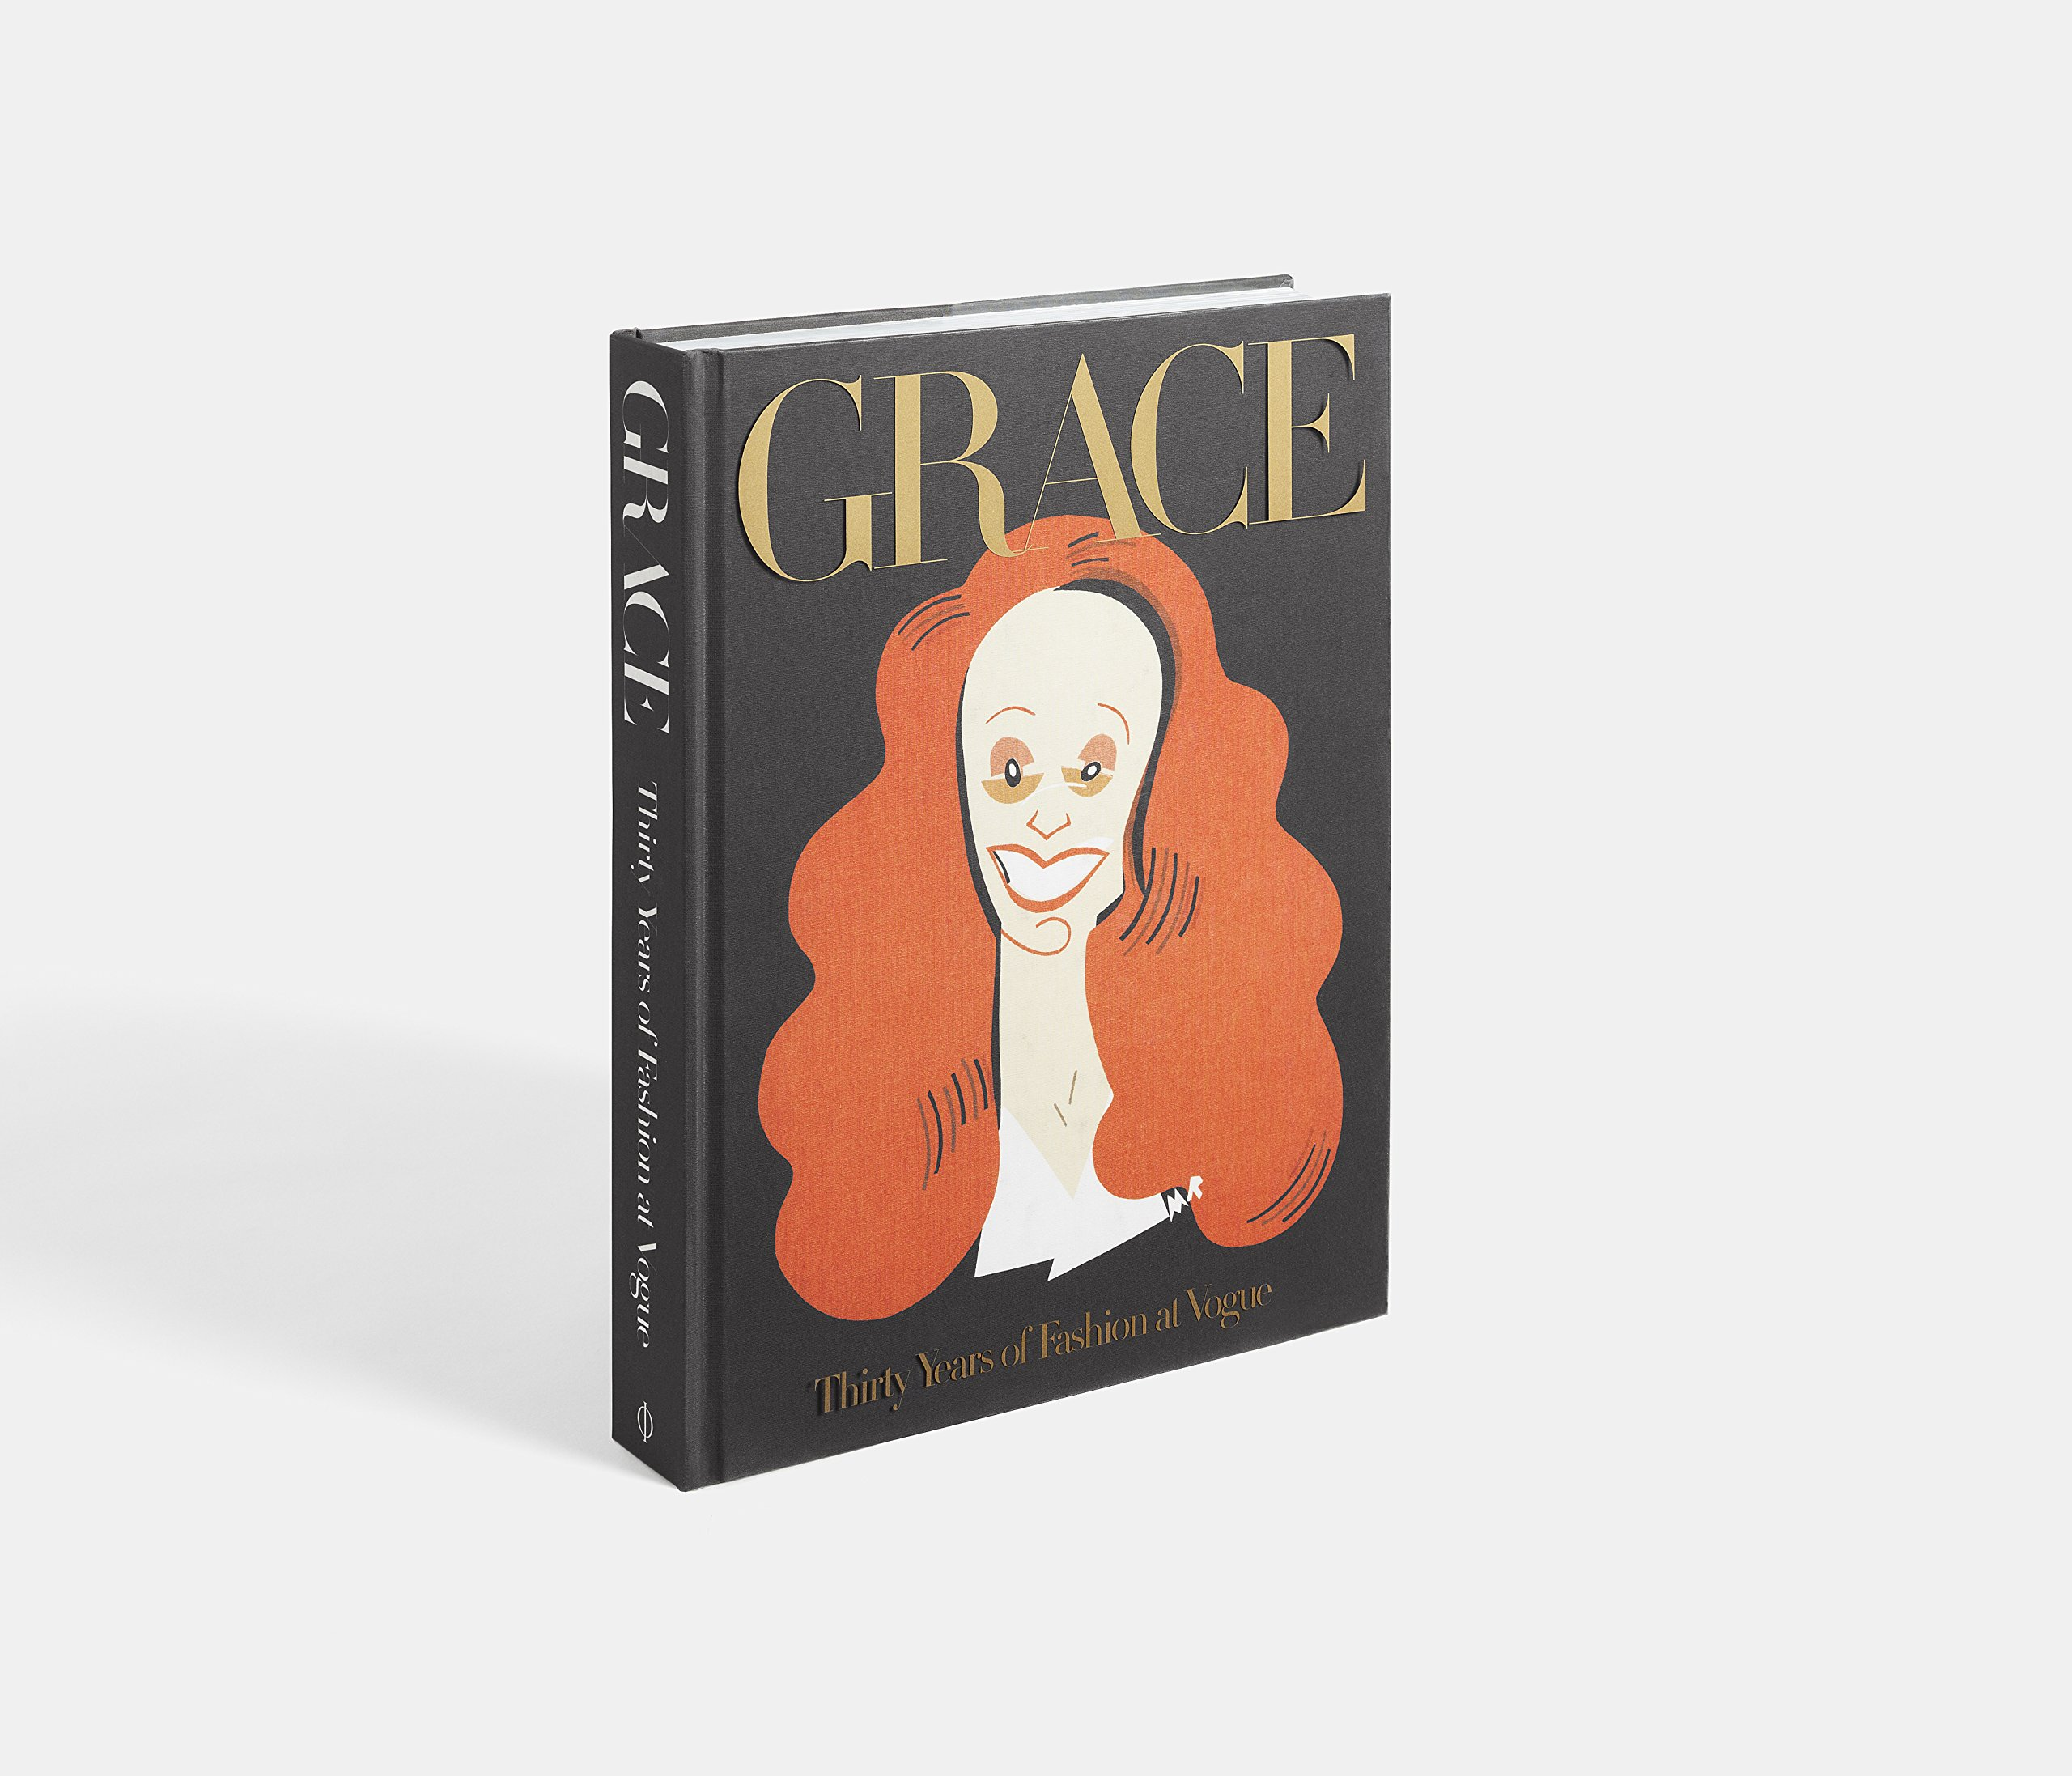 Grace Thirty Years of Fashion at Vogue Grace Coddington